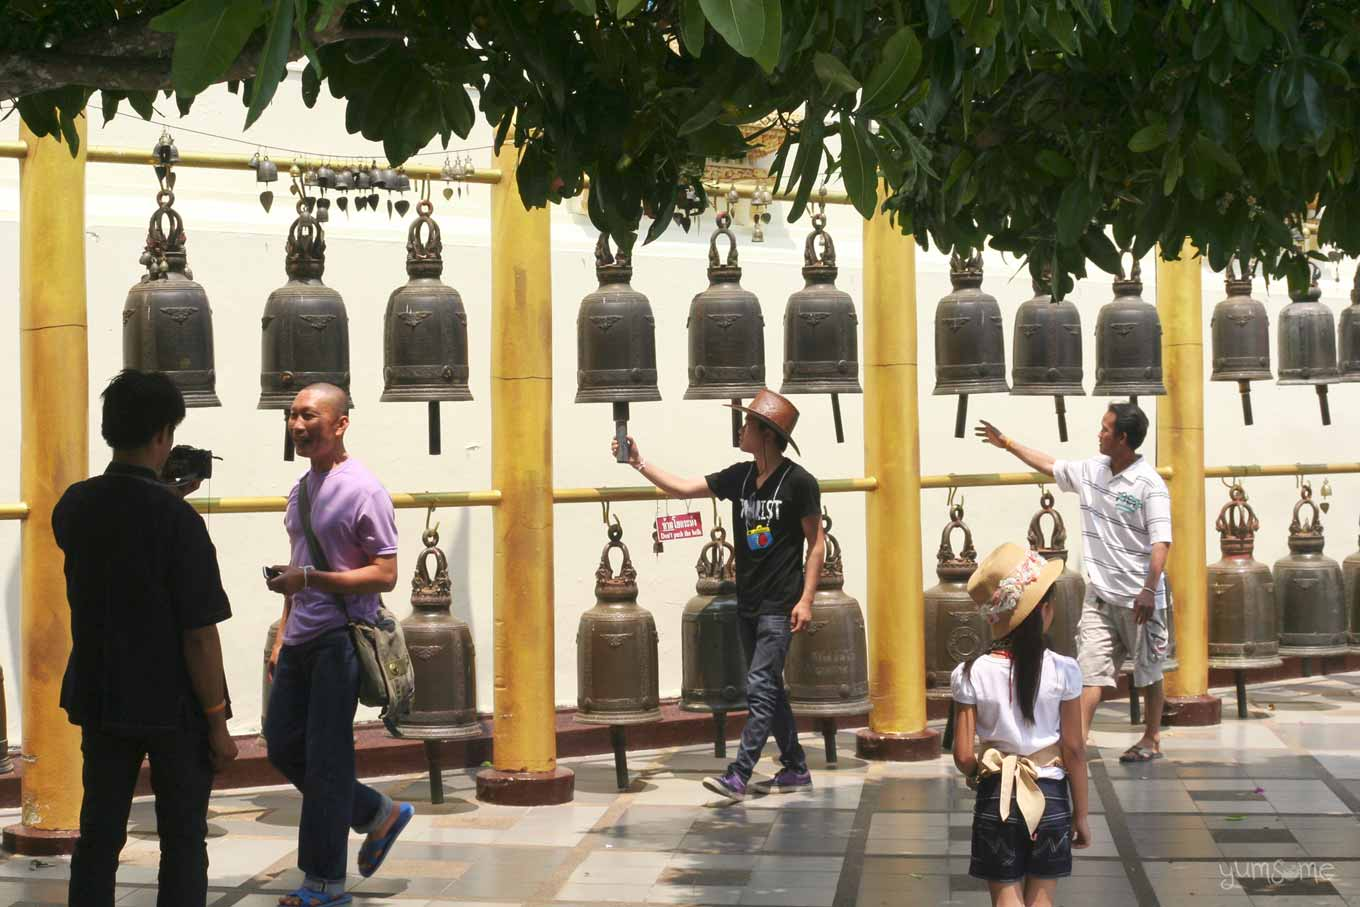 A row of temple bells, with people ringing them, at Wat Doi Suthep.